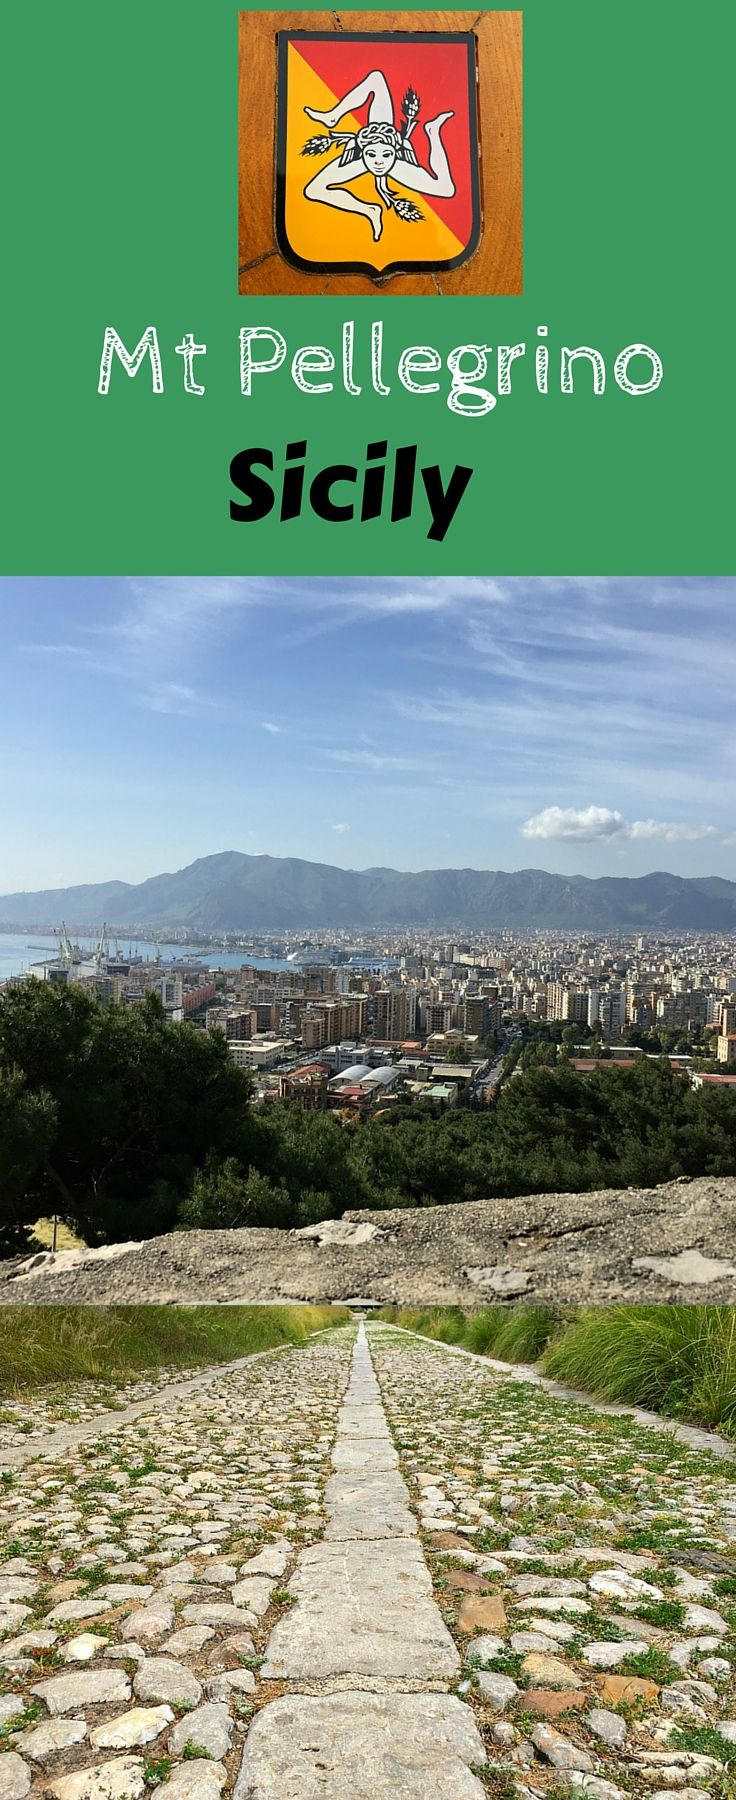 Mount Pellegrino in Palermo Sicily has a well paved hiking trail and provides the chance to visit the Sanctuary of Rosalia, Palermos' Patron Saint. If you love to hike, don't miss this top thing to do in Palermo, Sicily. Click to find out more  @venturists